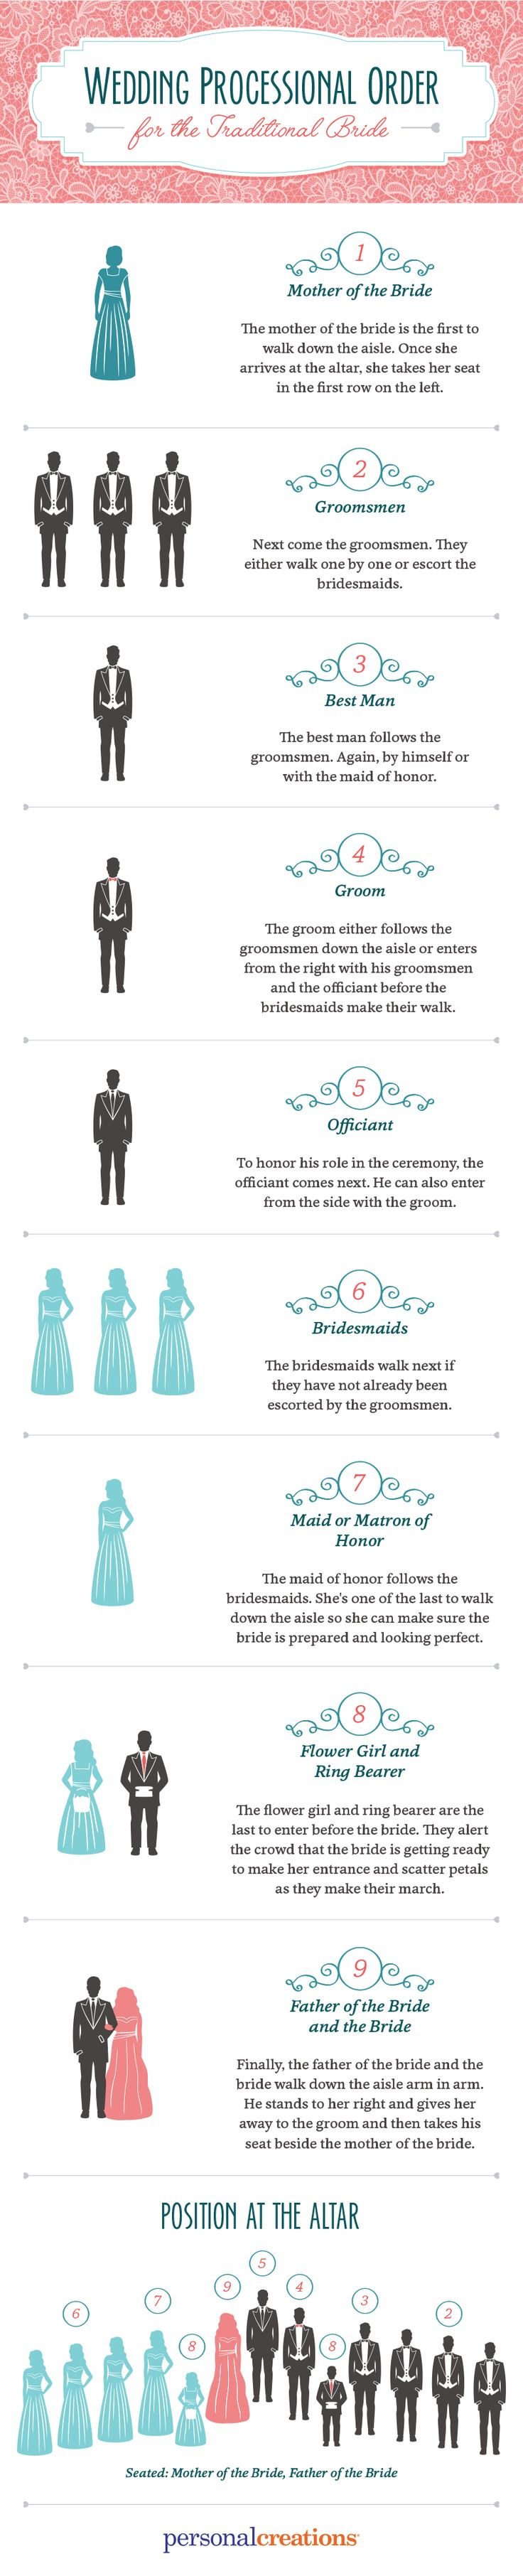 Wedding Processional Guide http://www.mydreamlines.com/2016/09/wedding-processional-guide/ #weddingprocessionalguide